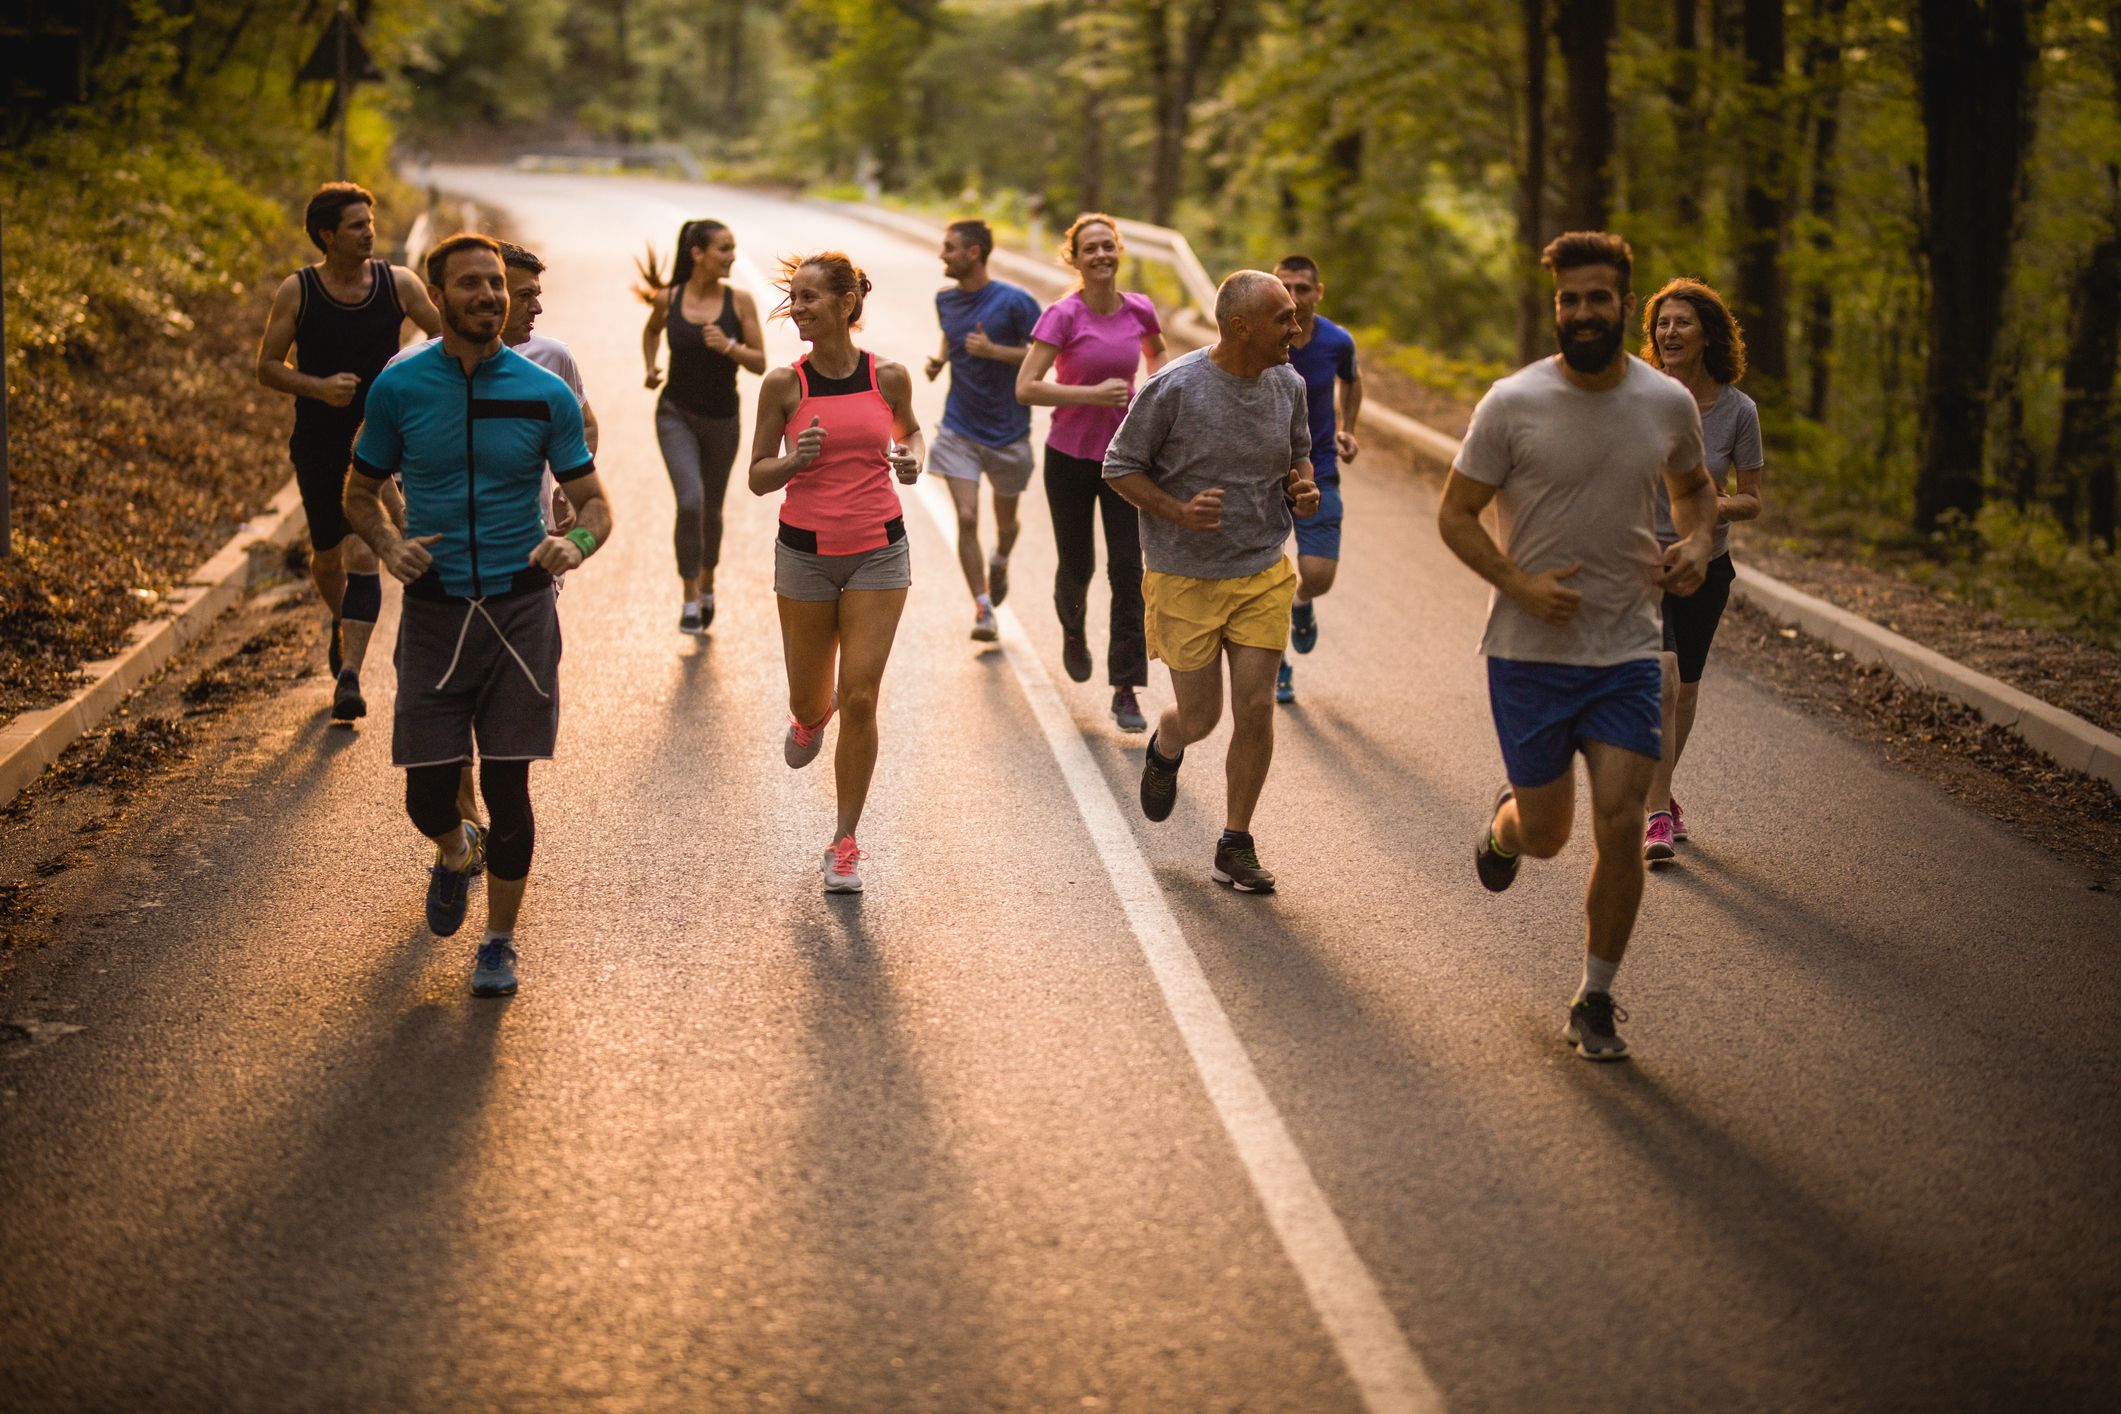 large-group-of-athletes-talking-while-having-a-road-royalty-free-image-1568746096